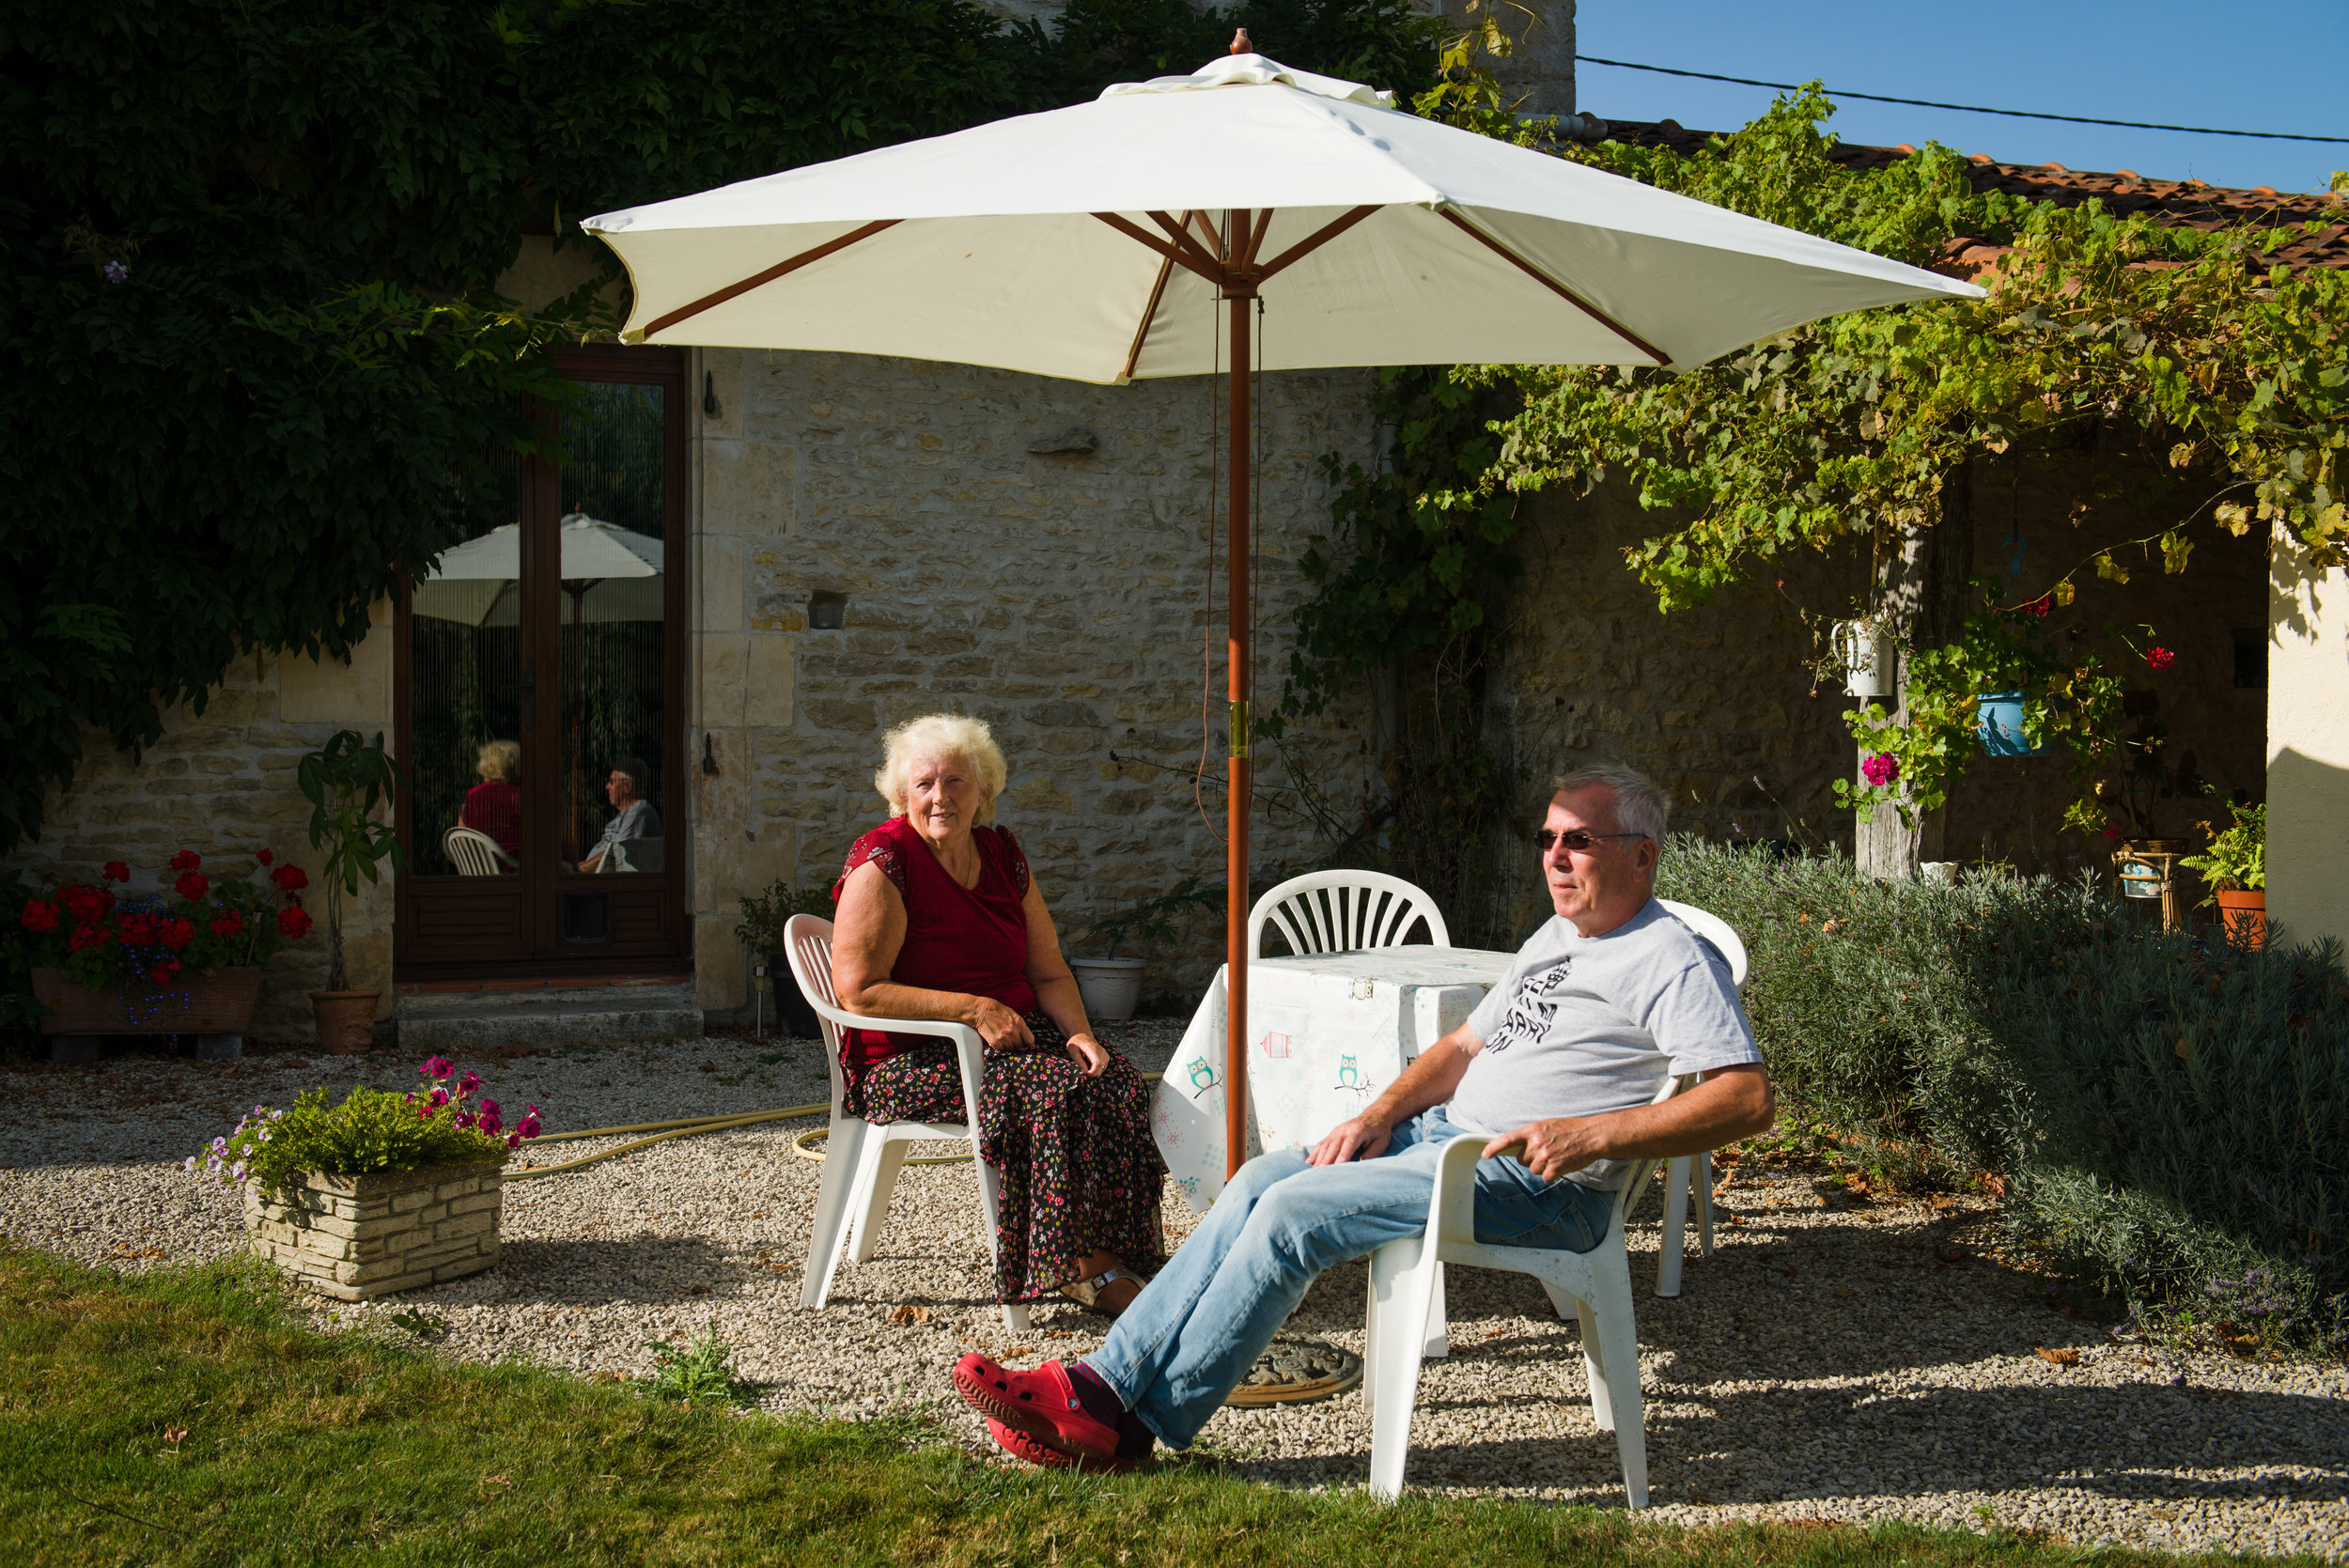 """Dave and Norma Spokes pose for a portrait in their backyard garden outside the town of Mauprevoir, France. Dave and Norma retired to France in 2010 moving from the UK. """"We have friends living here & we visited several times and we liked the lifestyle, we liked the people, the countryside, the type of homes you can get here,"""" Dave said. """"We found that we could sell our property in England and buy something substantially larger with a lot more land over here. And, generally speaking, the cost of living here is less than it is in England, so your pension tends to go further."""" Since arriving in France, Norma has been diagnosed with cancer and is being treated in France. Although Brexit has created some concern in how it could affect UK pensioners access to care in France, Dave and Norma believe they can continue to benefit from the French system. """"I don't think there will ever be a situation where anyone says we're not going to treat you because you are British. There could be a situation where they say 'well will continue to treat you but you will need extra insurance'. And it's a question of whether people can afford that. If the UK government gets their act together and starts negotiating properly. There is a reasonable chance we come out of this with most of our rights in tact."""""""